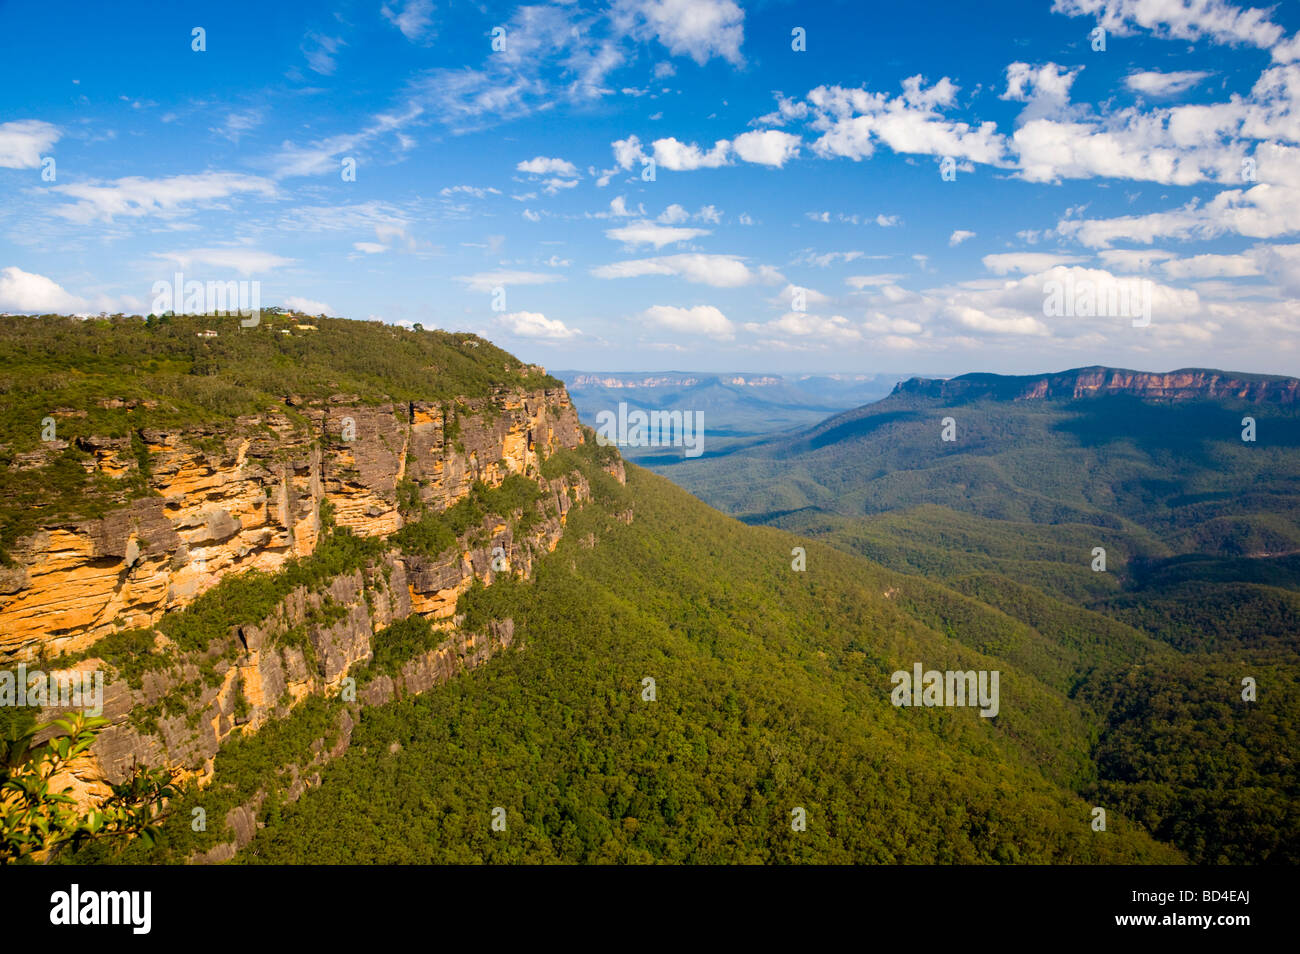 Inland Cliff Blue Mountains National Park New South Wales Australia - Stock Image